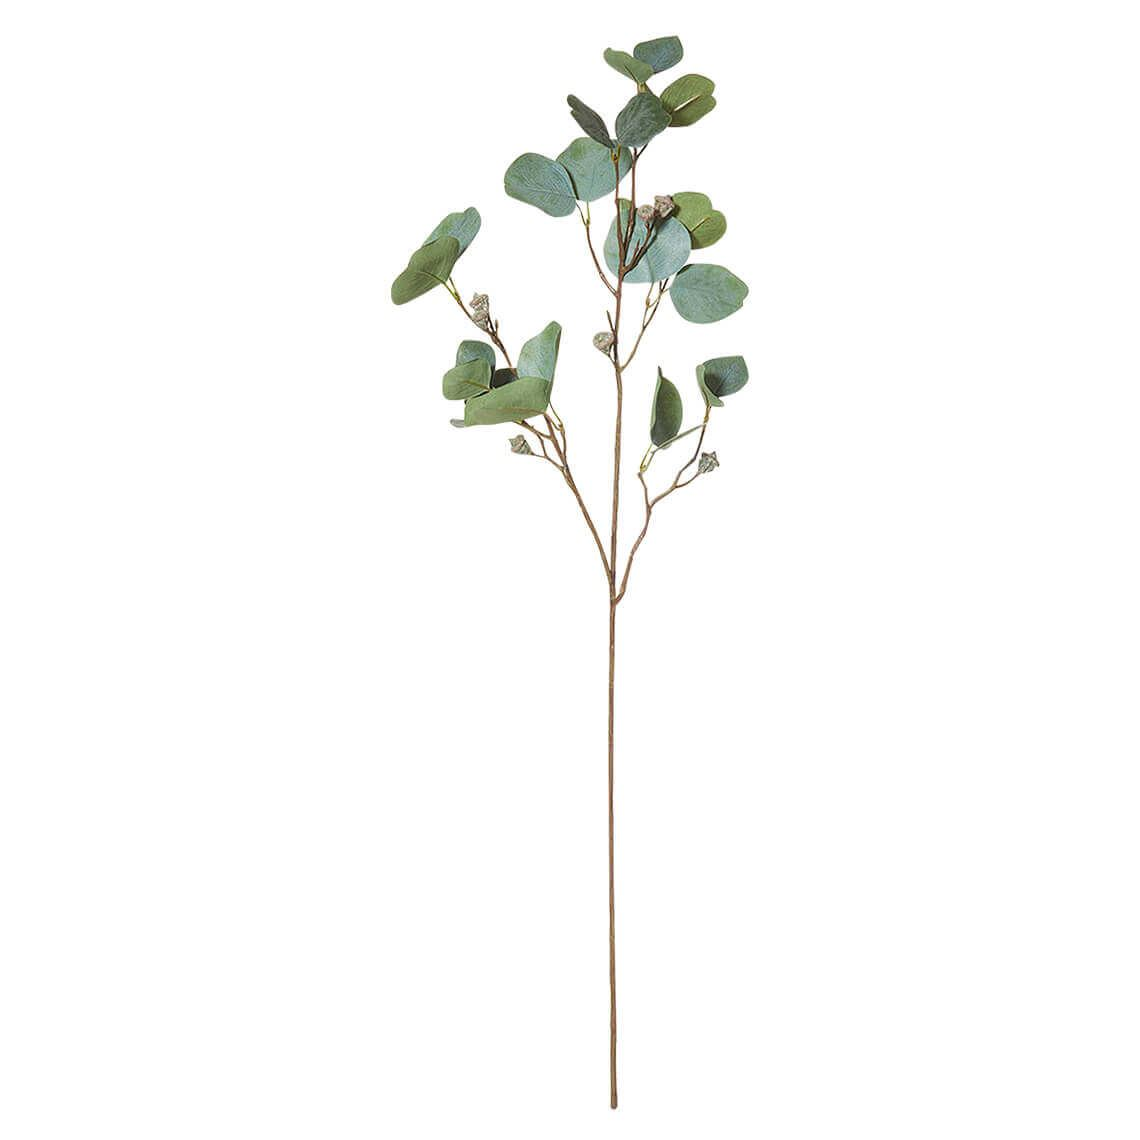 Eucalyptus Pod Artificial Foliage Stem Size W 20cm x D 10cm x H 85cm in Green Freedom by Freedom, a Plants for sale on Style Sourcebook